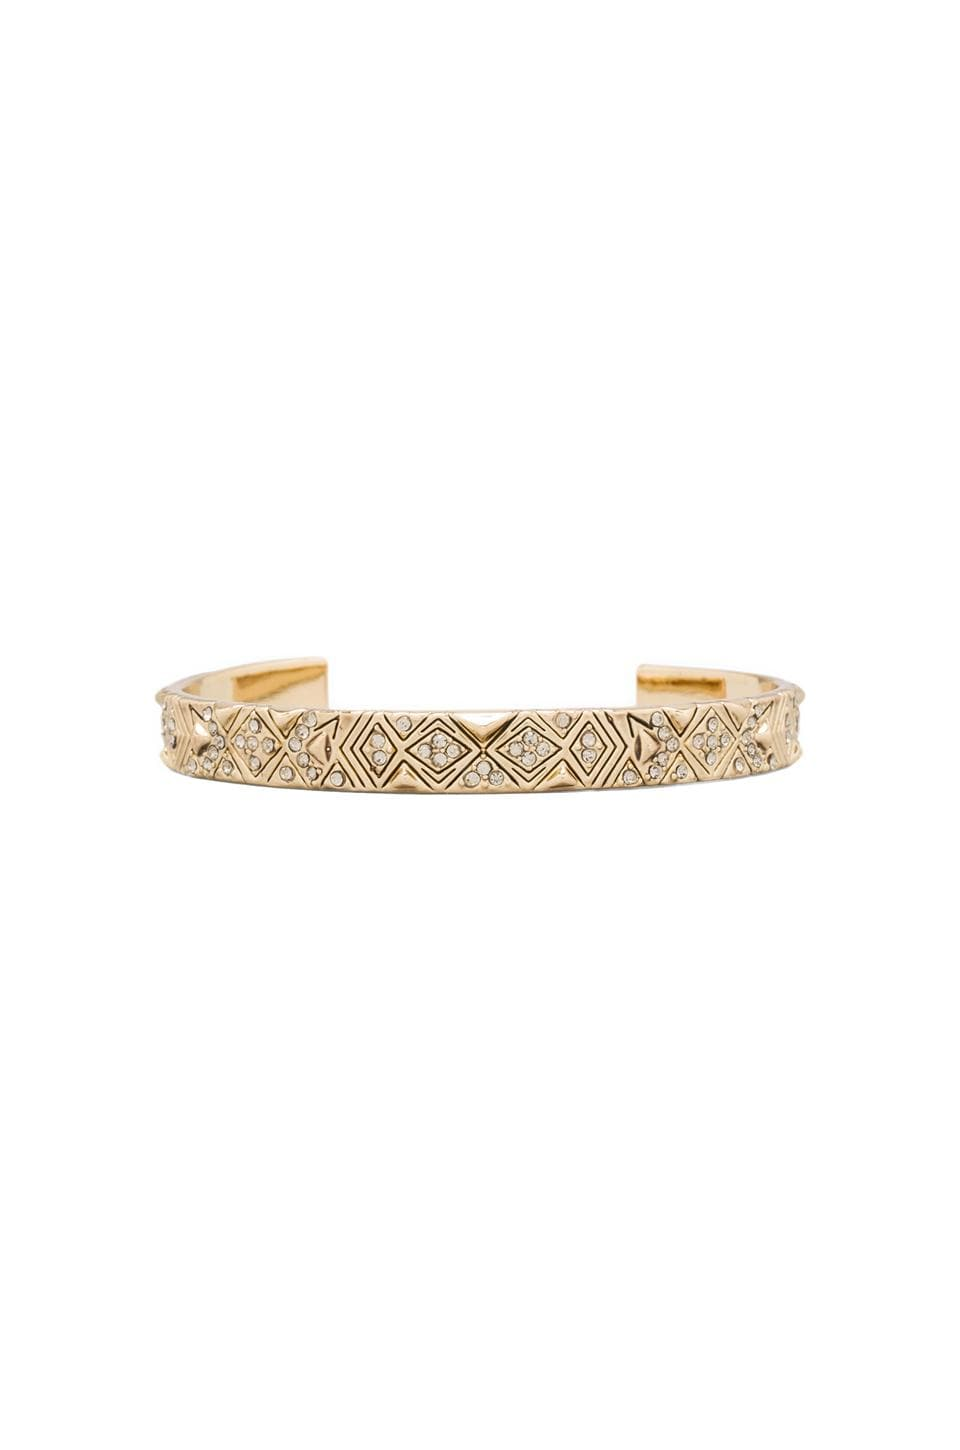 House of Harlow 1960 House of Harlow Engraved Kilim Cuff in Gold